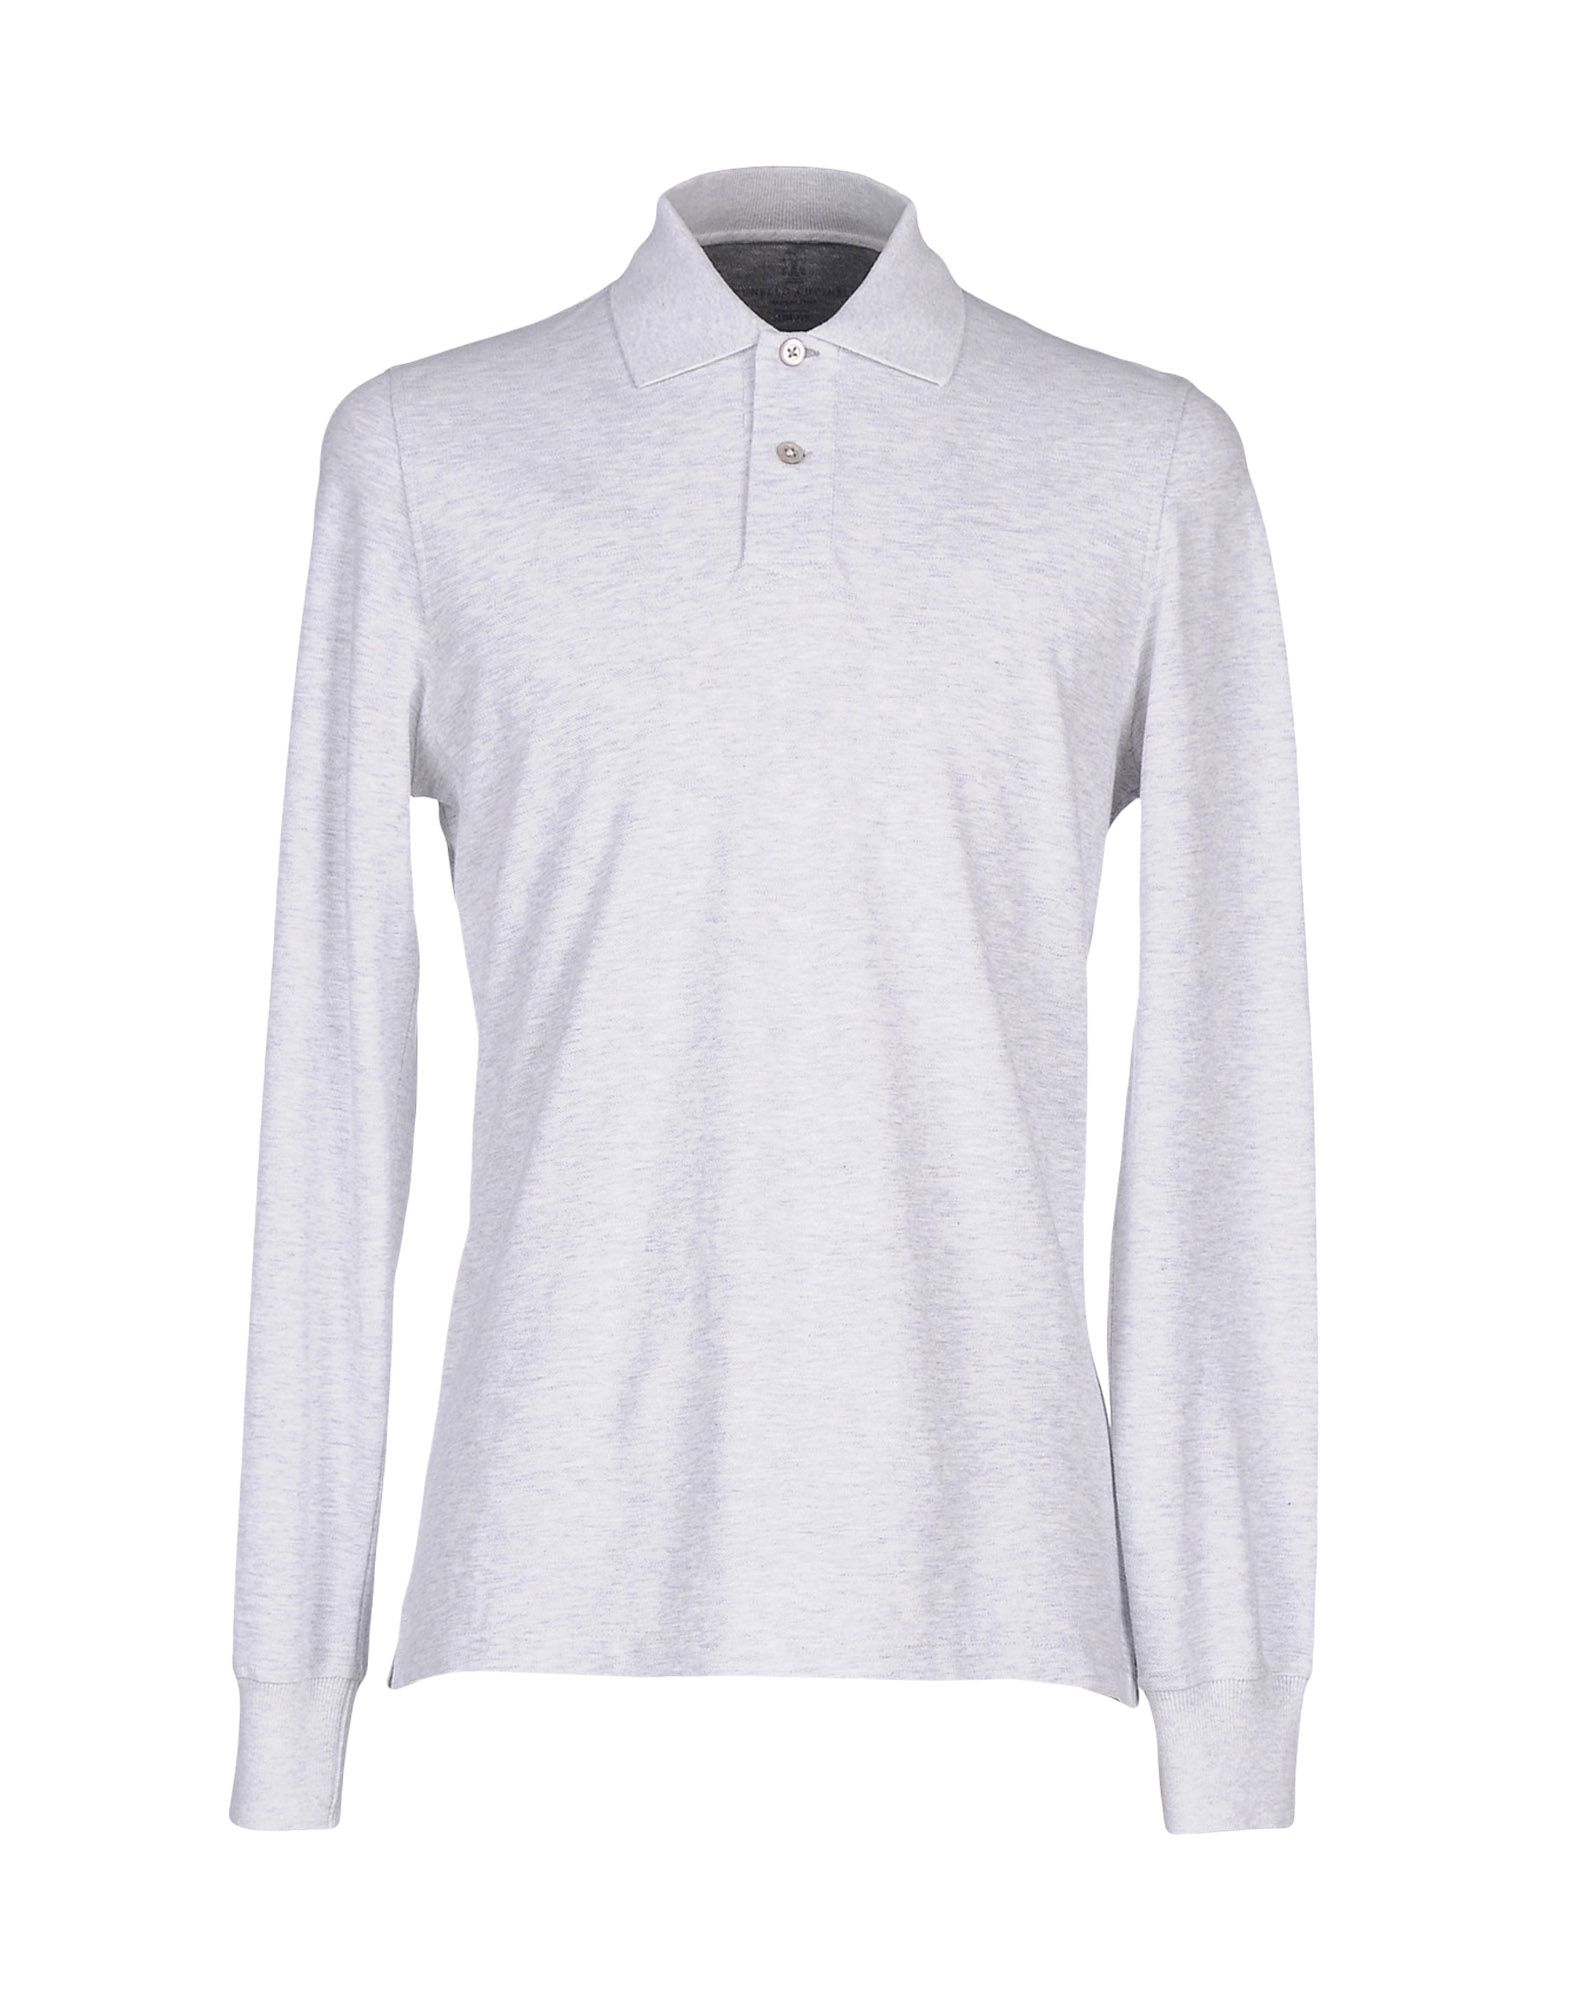 Lyst brunello cucinelli polo shirt in gray for men for 20 34 35 dress shirts